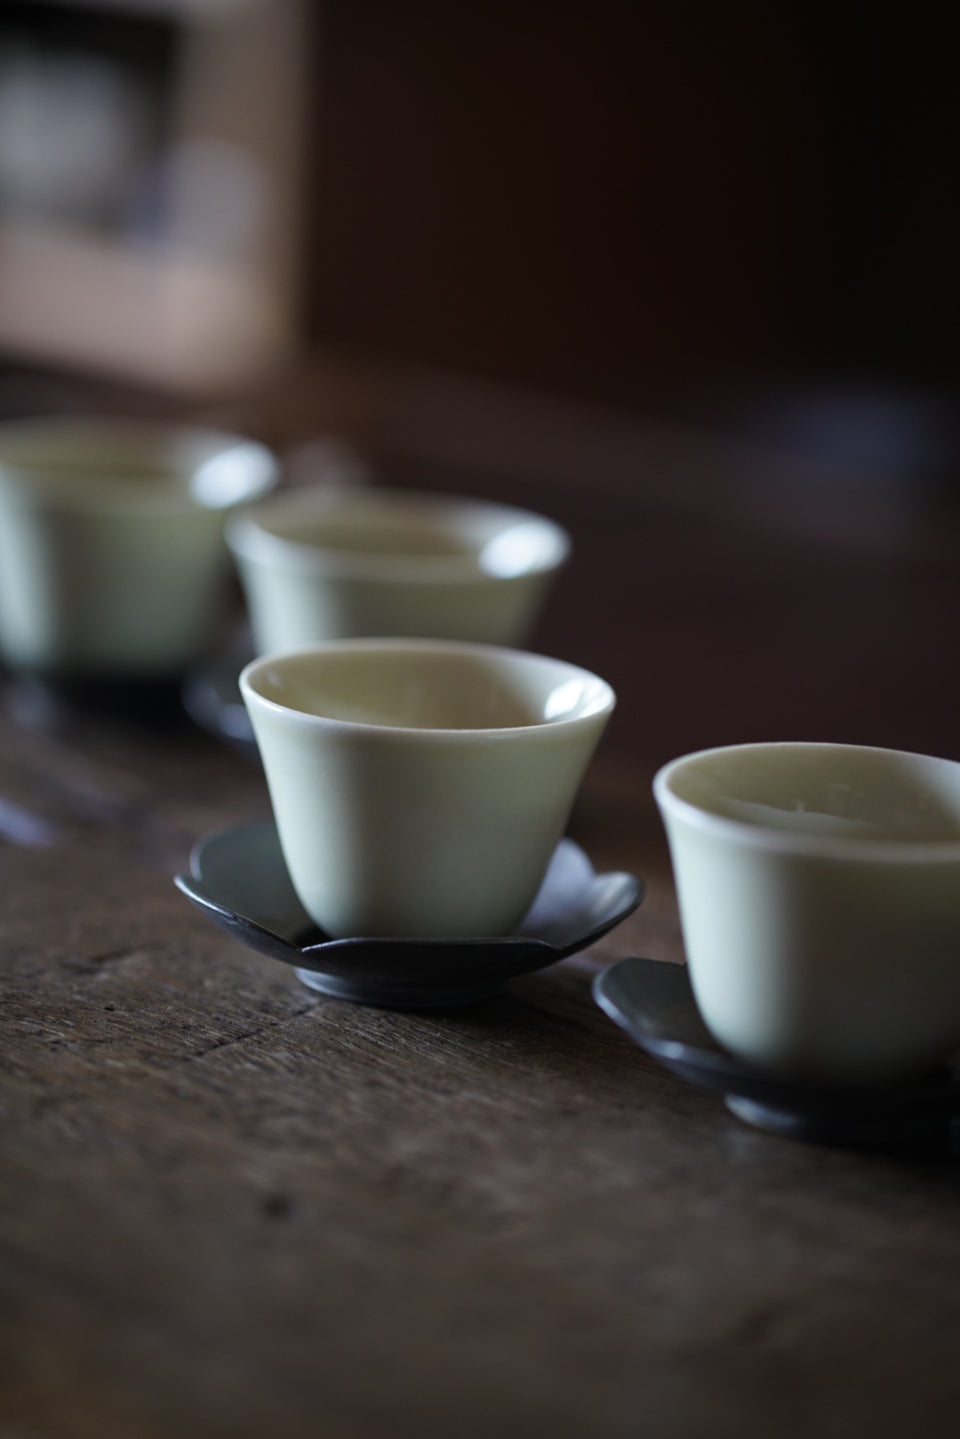 Gongfu teacups - off-white, multiple styles